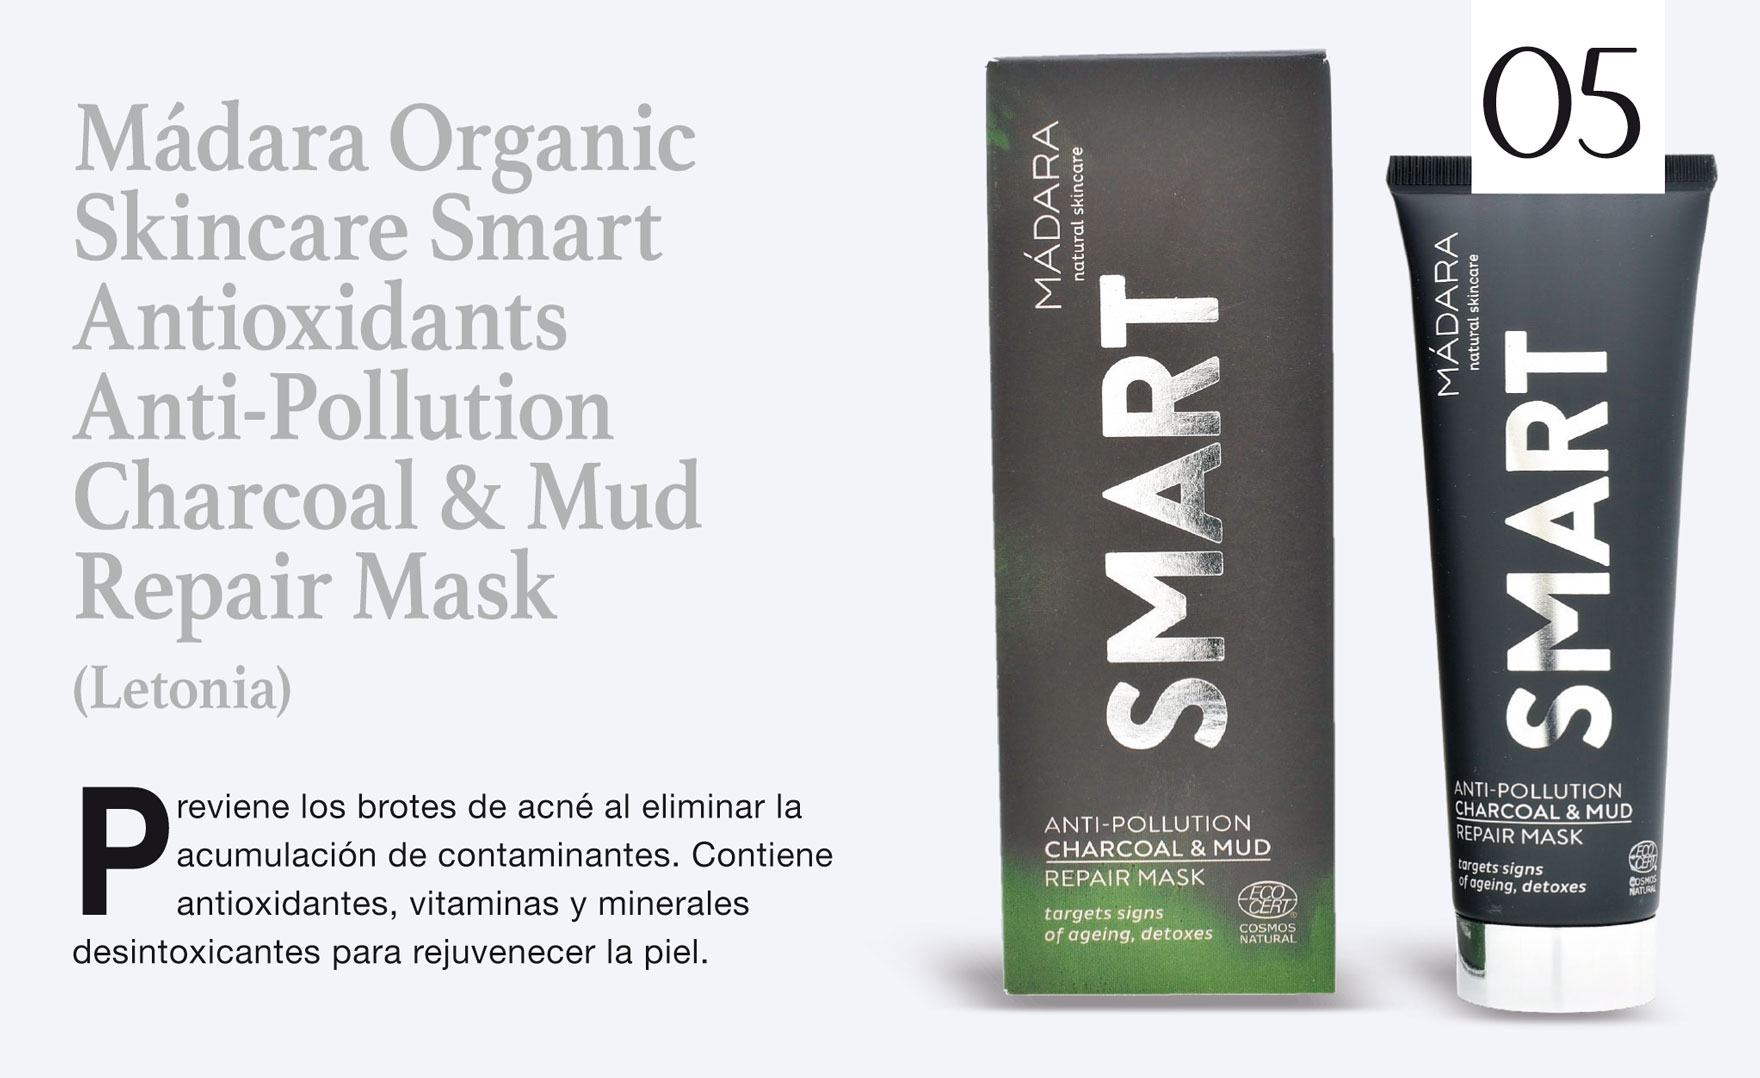 Mádara Organic Skincare Smart Antioxidants Anti-Pollution Charcoal & Mud Repair Mask